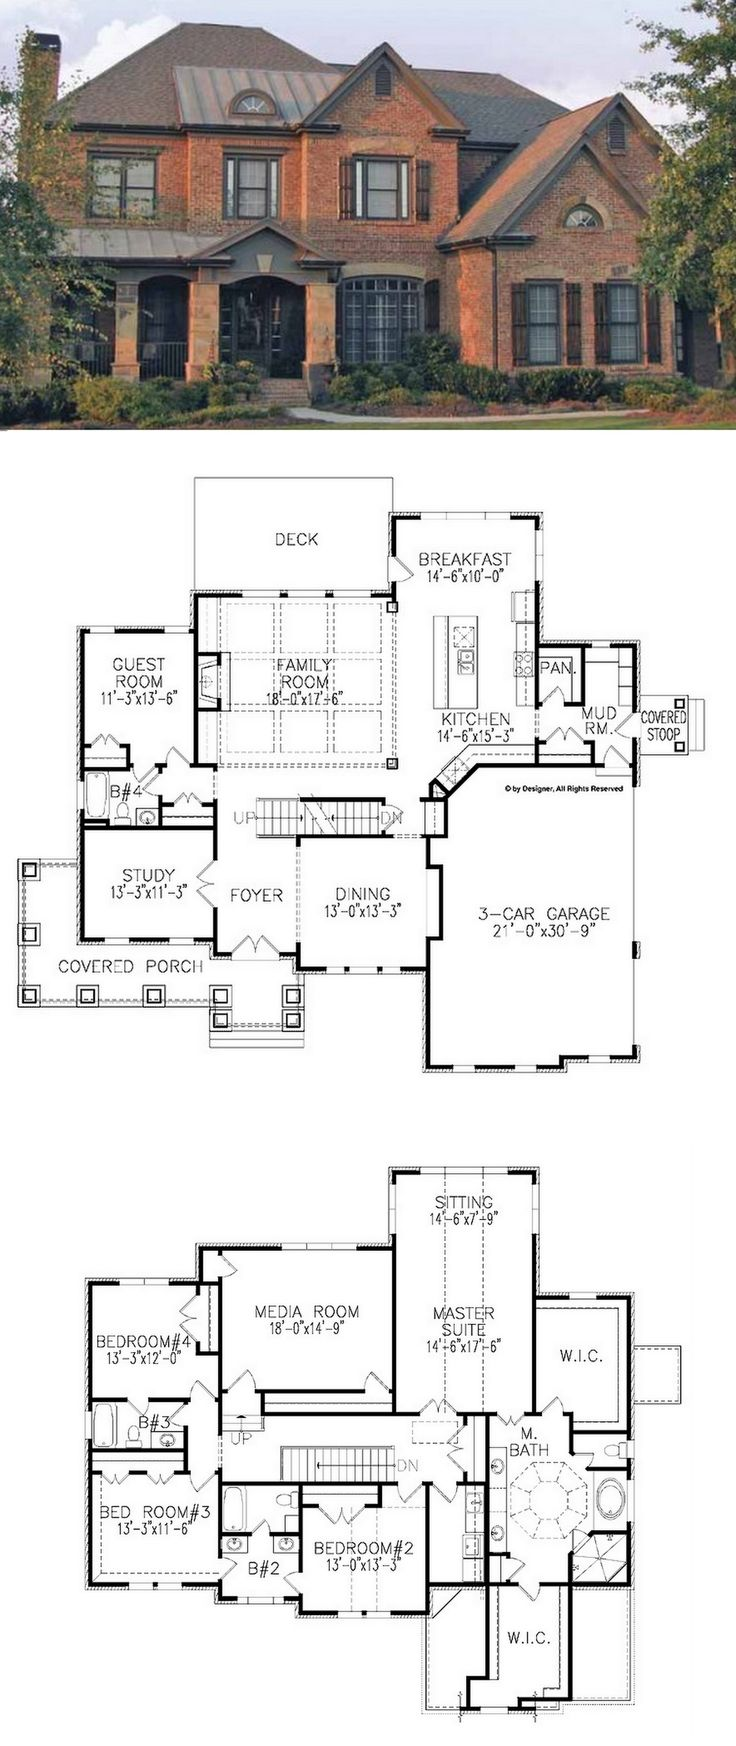 Best 25 5 bedroom house plans ideas only on pinterest 4 for Five bedroom house